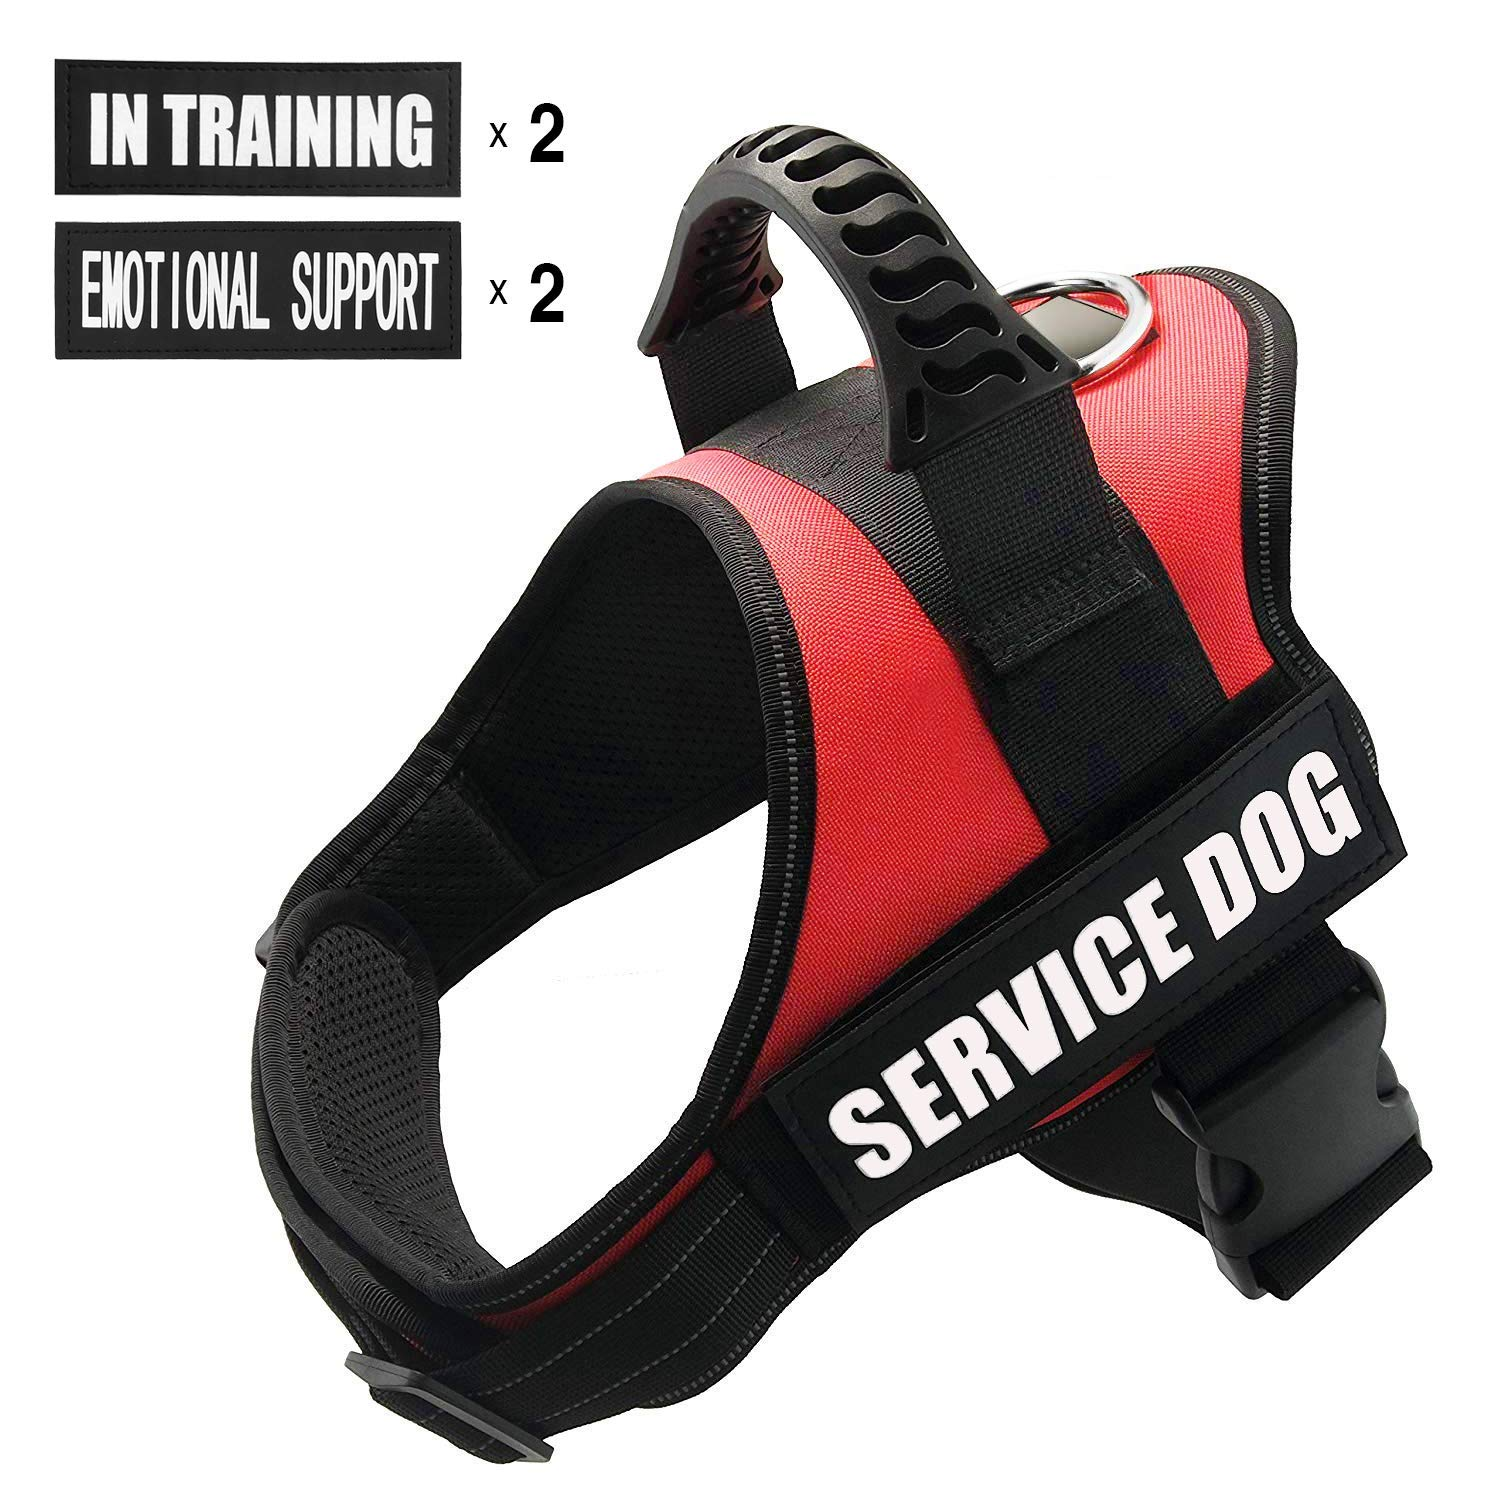 FAYOGOO Dog Vest Harness for Service Dogs, Comfortable Padded Dog Training Vest with Reflective Patches and Handle for Large Medium Small Dogs (Small: Chest 20-25'' Neck 16-20'', Red)